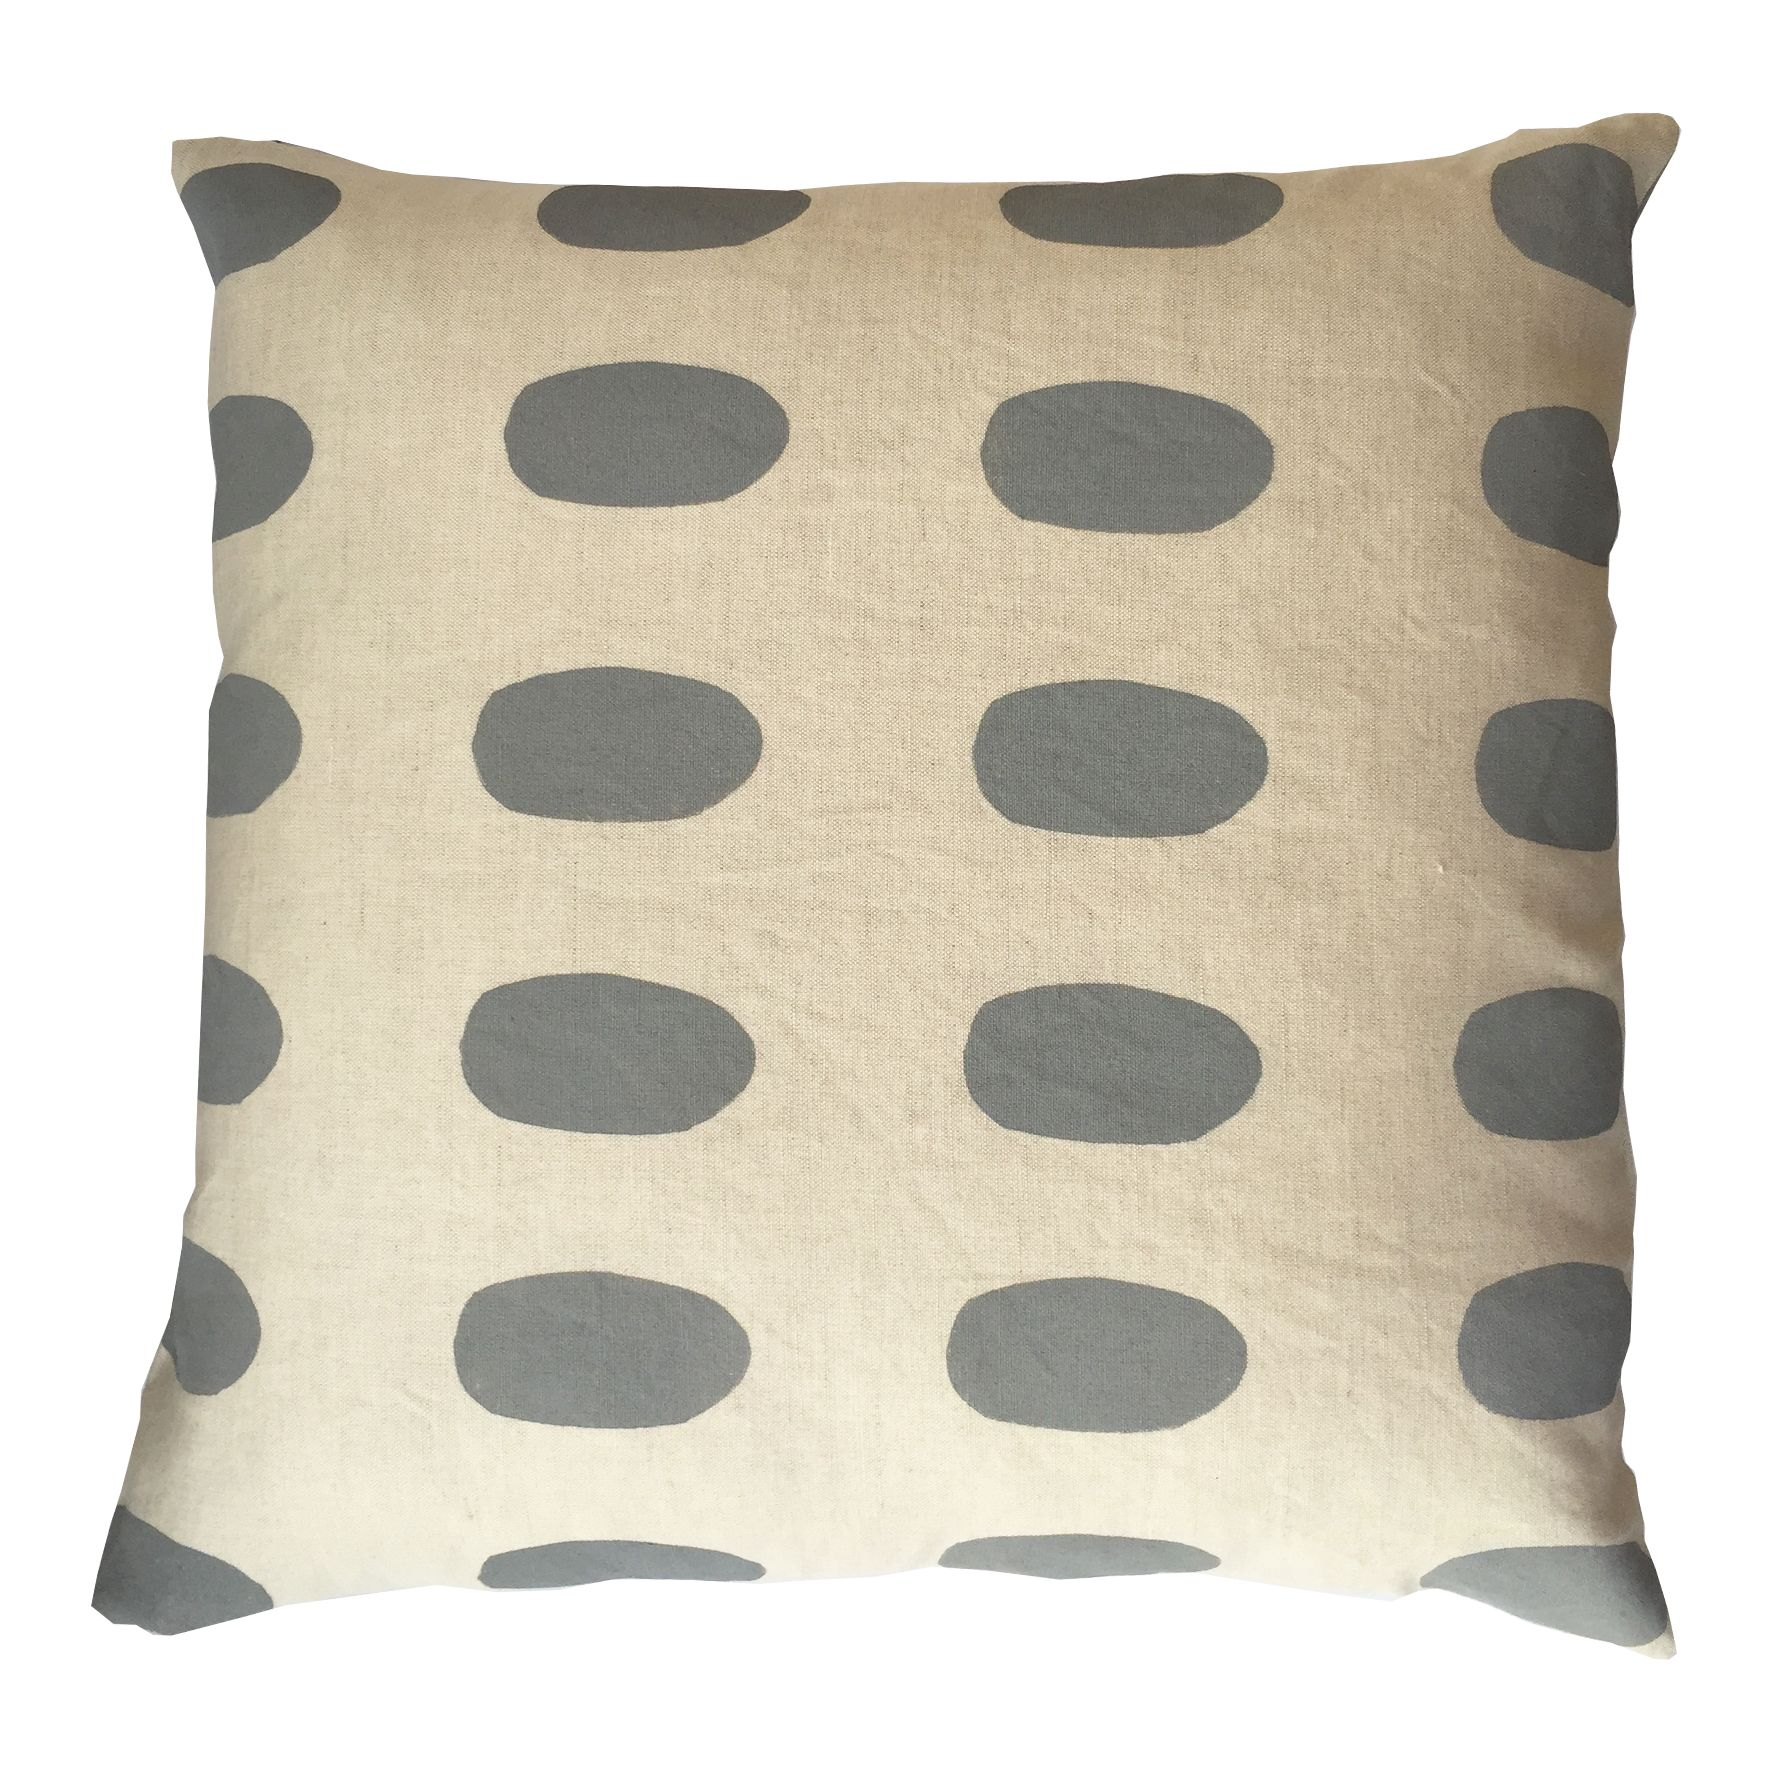 Limited edition oval print cushion cover hand printed design on